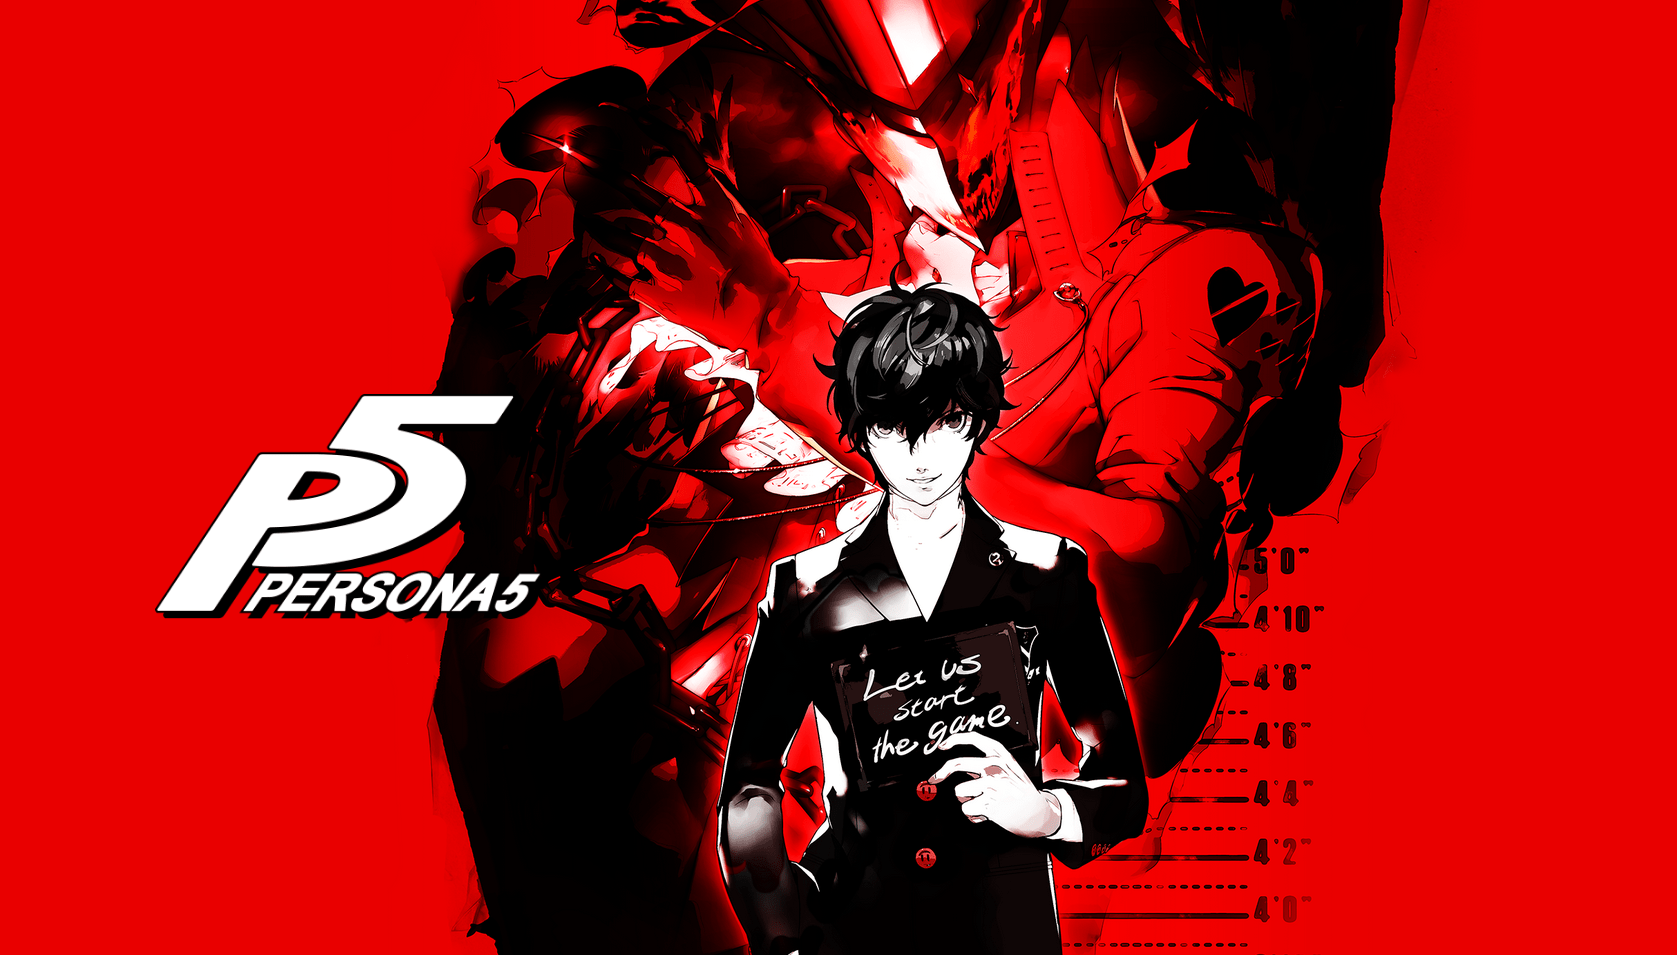 Persona 5 Wallpaper 4k Anime Ps4 Profile Background 3112386 Hd Wallpaper Backgrounds Download